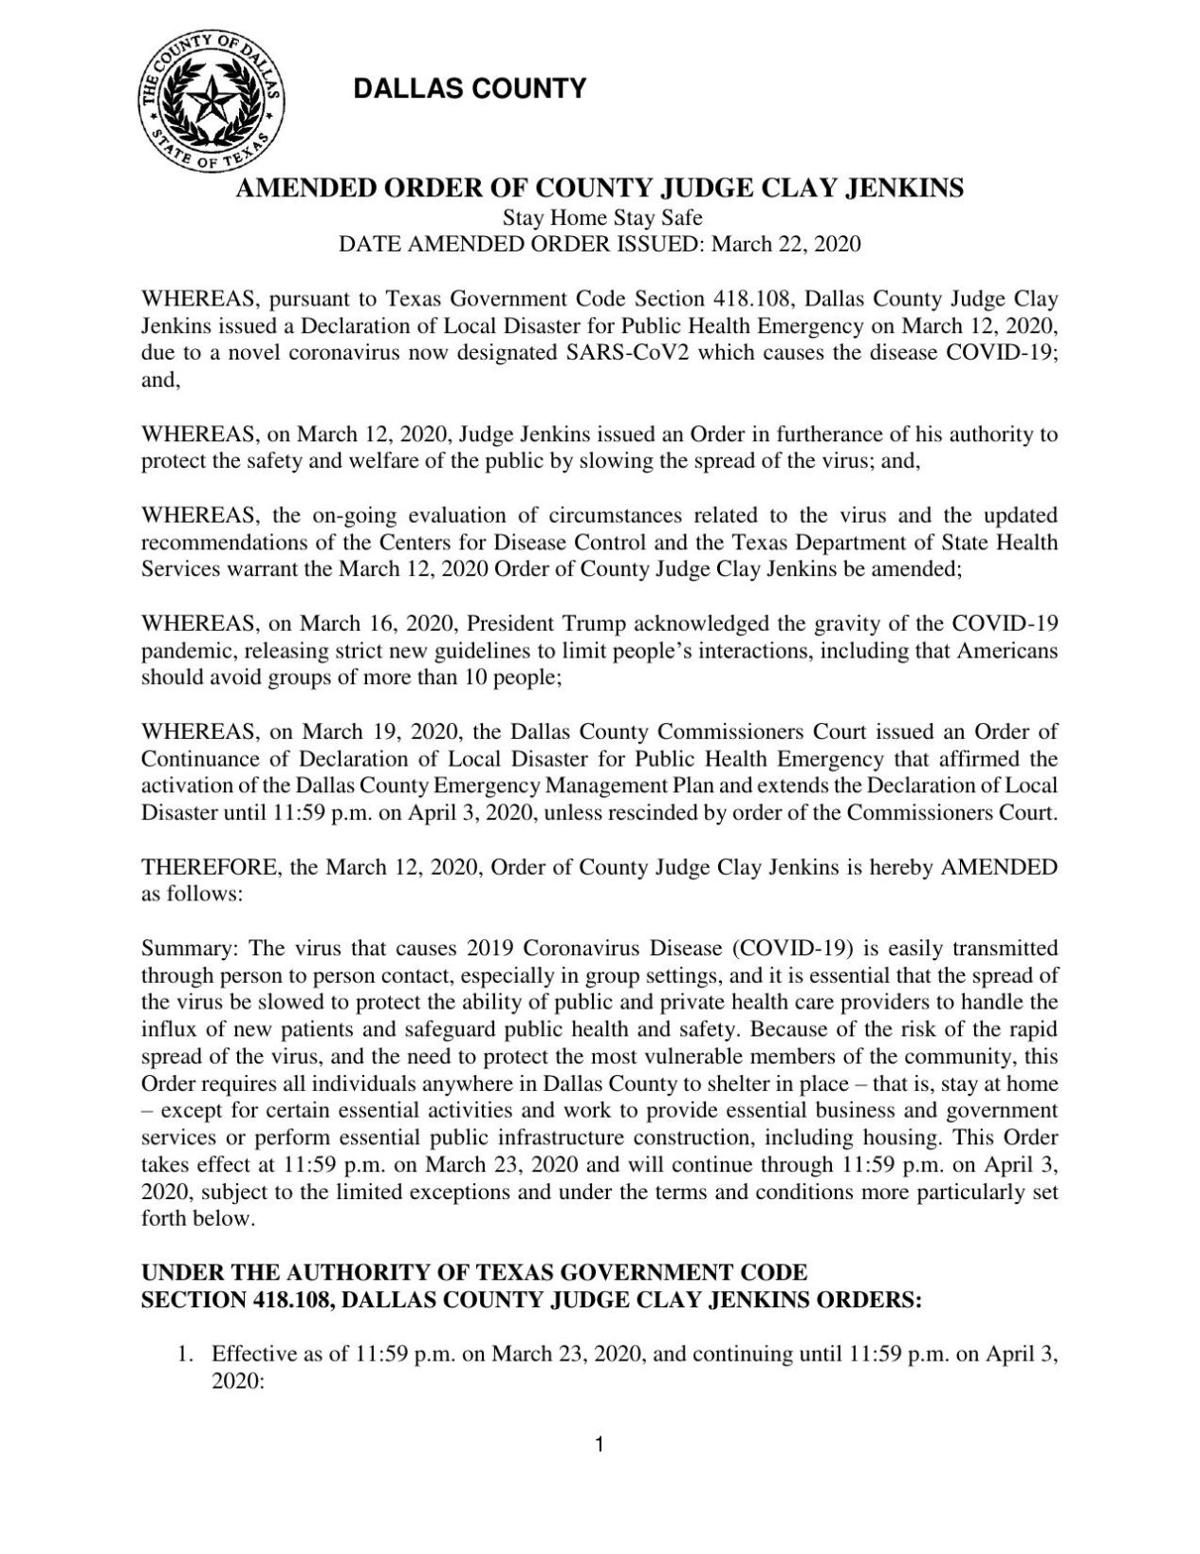 March 23 Dallas County amended order